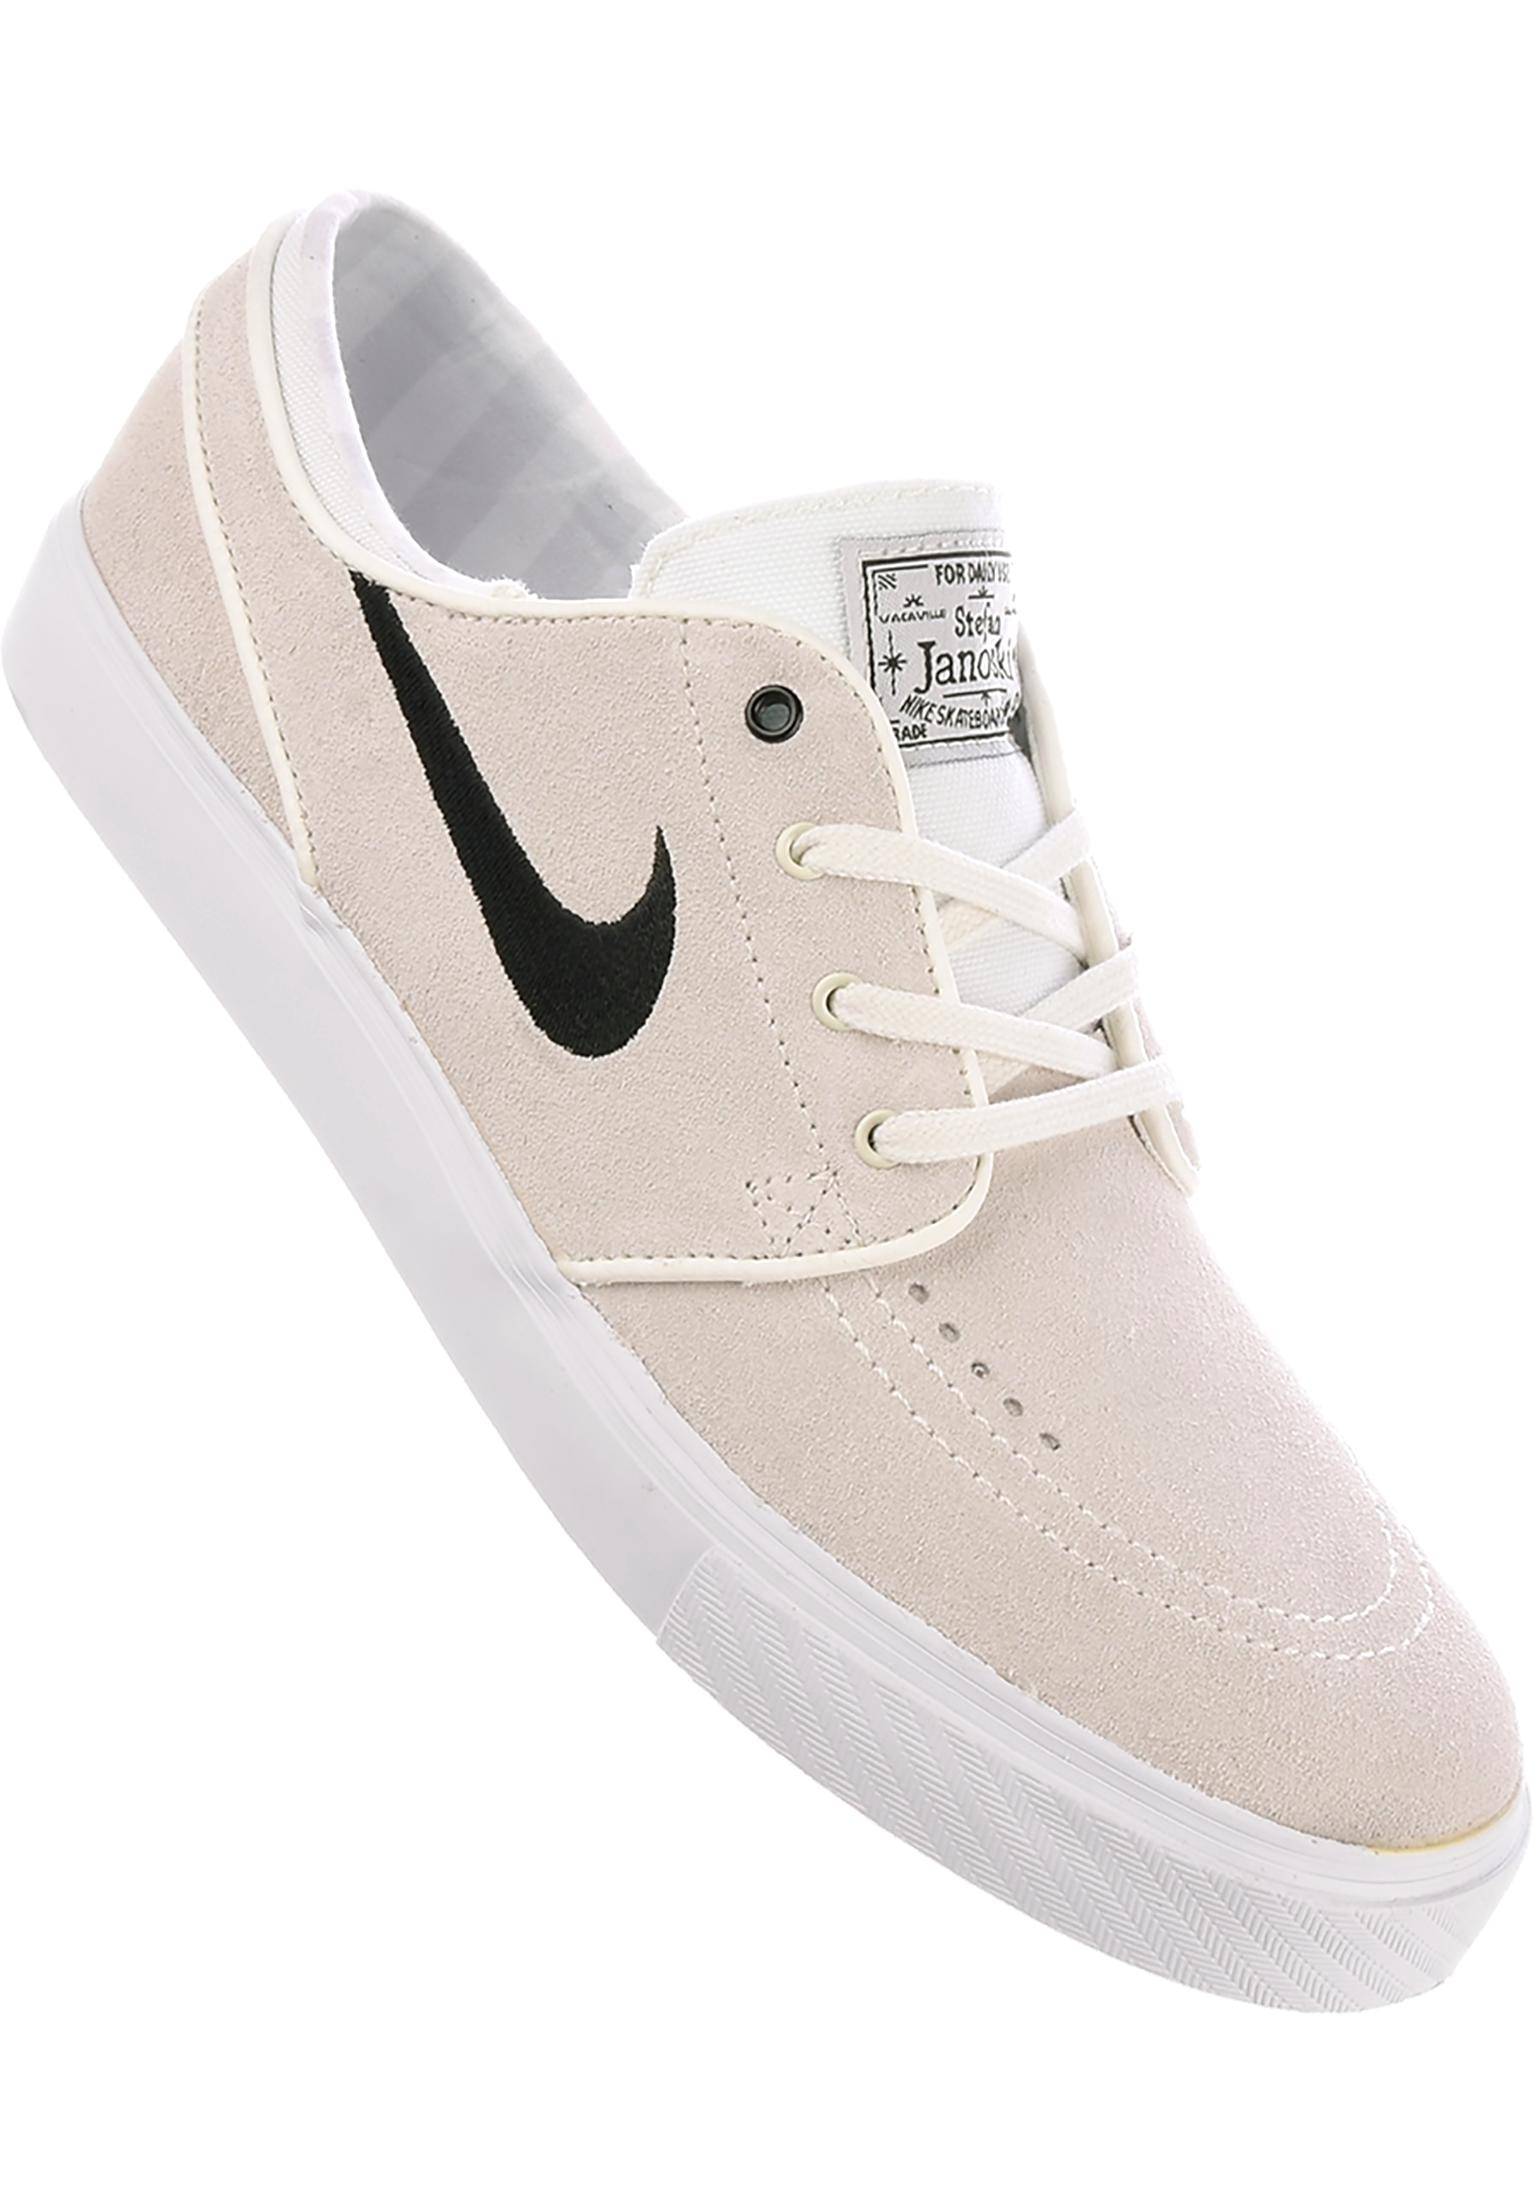 cheap for discount 72032 26151 Zoom Stefan Janoski Nike SB Alle Schuhe in summitwhite-black-pureplatinum  für Herren | Titus